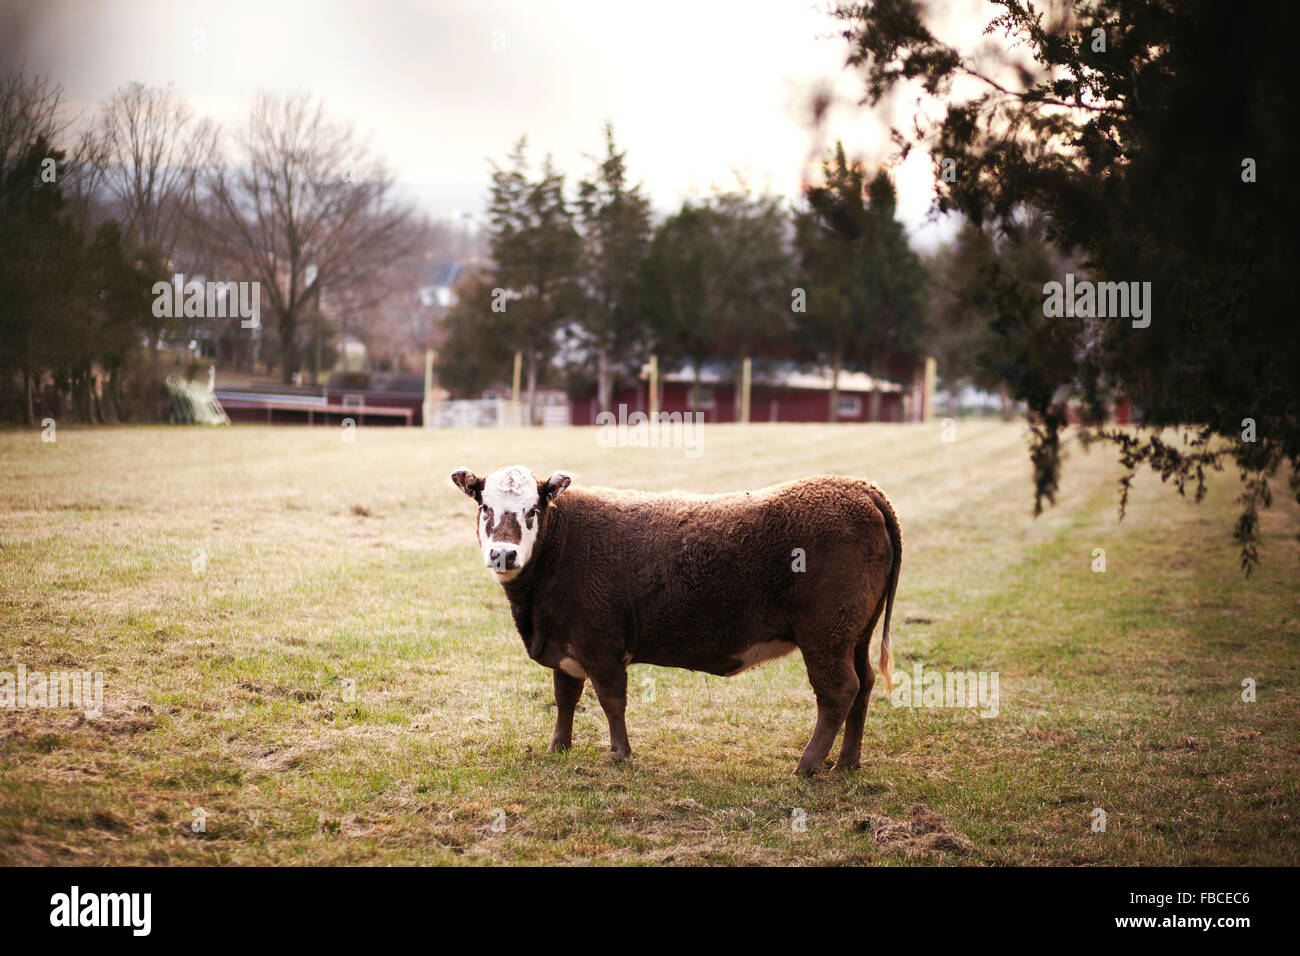 Single brown and white cow standing alone in muted green grass field with red barn in background and hints of tree - Stock Image